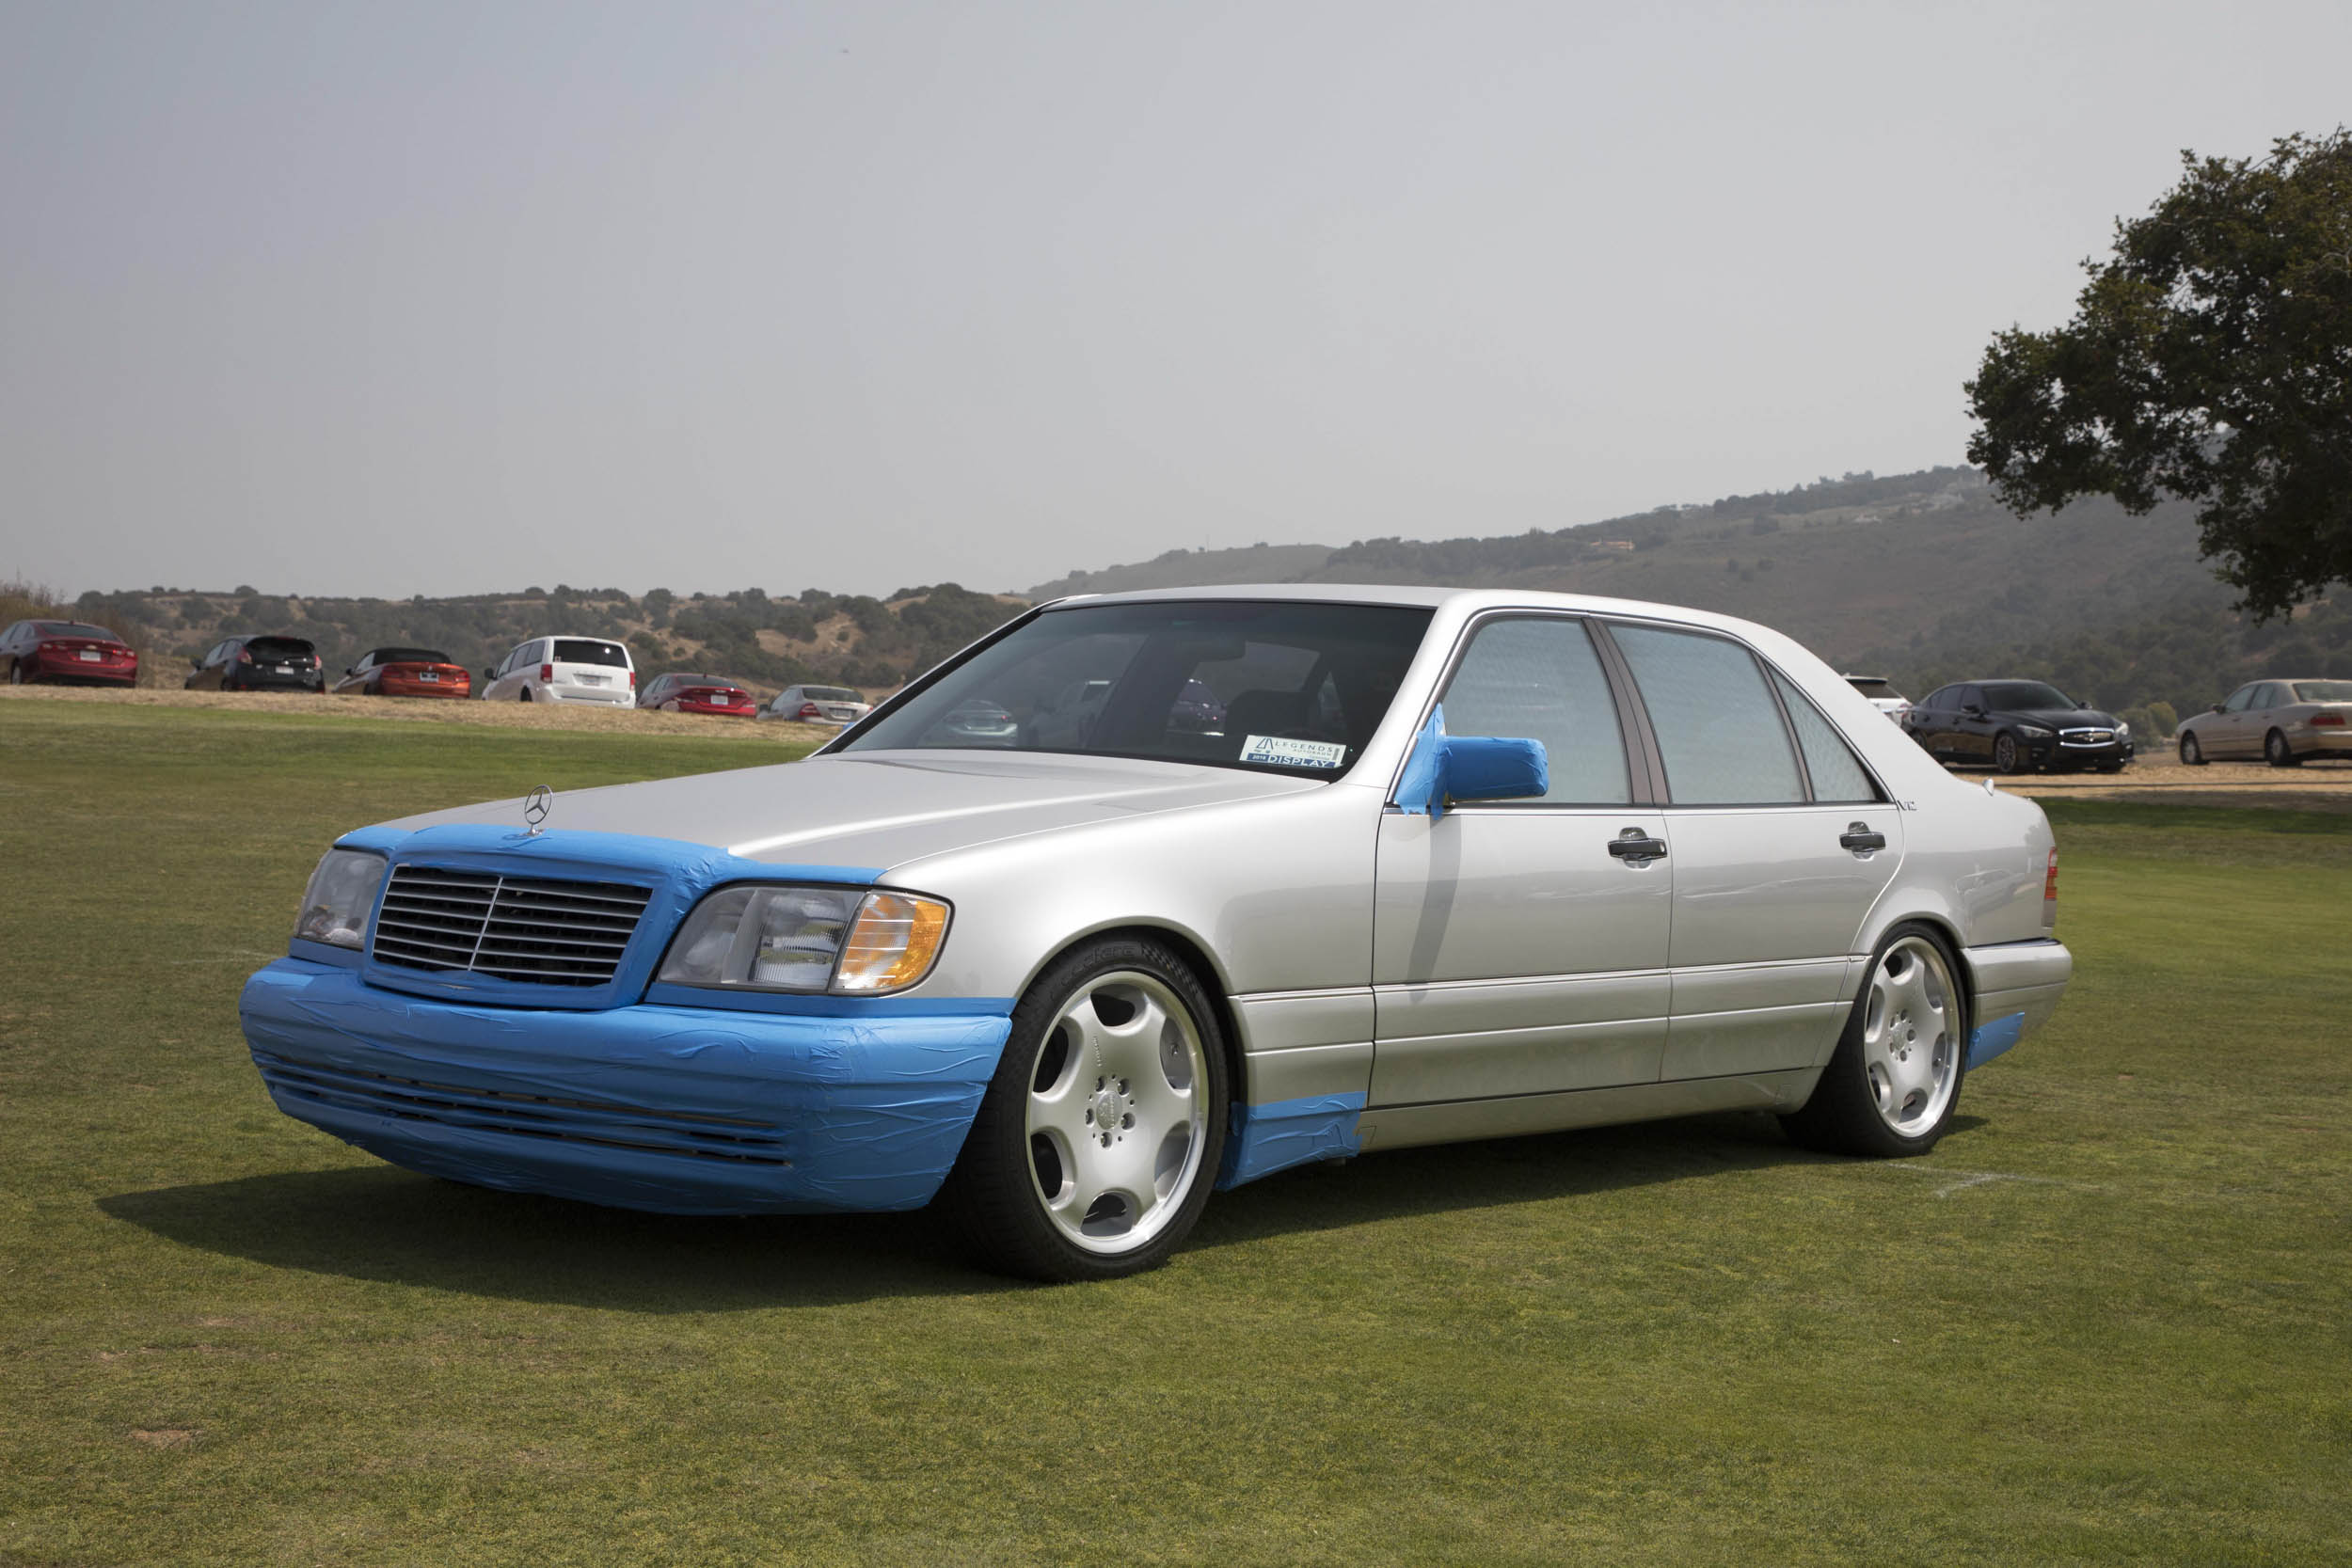 "We came across this immaculate 1995 Mercedes-Benz S600 V-12 just as owner Nover Reniedo was starting to apply blue painters tape to the sedan's frontal area for the drive back home to Torrance, California (near Los Angeles). His efforts have been worth it during the 15 years he's owned the car, as the exterior is flawless. ""If you maintain your car daily, it never gets ahead of you,"" Nover told us, ""and it doesn't take that much work to keep it perfect."" The interior of the big Benz is just as pristine. Nover told us he keeps the leather butter-soft by applying a layer of neatsfoot oil covered in plastic garbage bags for three days. ""It smells at first,"" he admits, ""but it goes away!"""